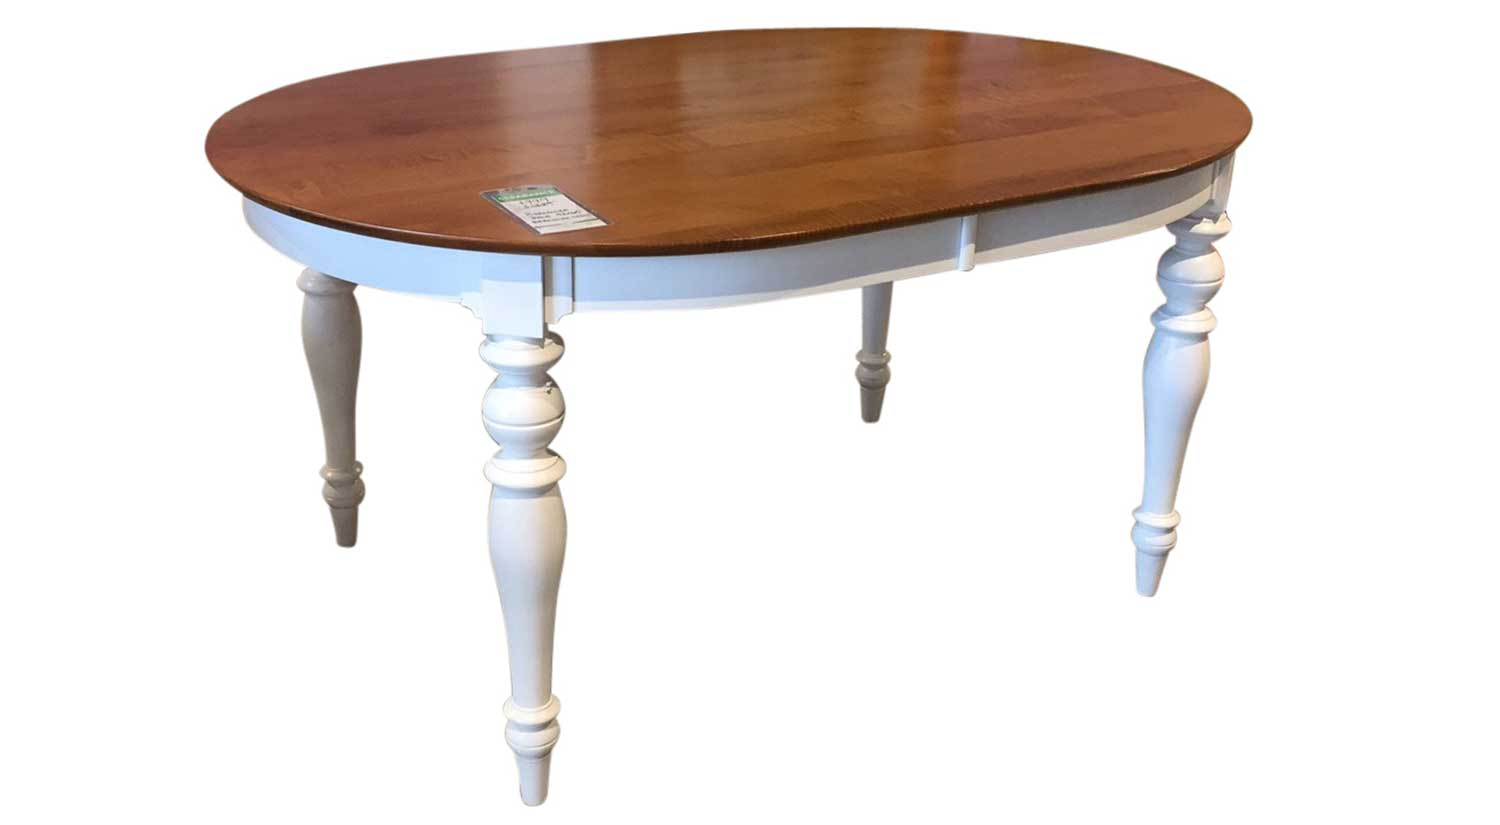 Circle furniture berkshire dining table for Circle furniture dining tables